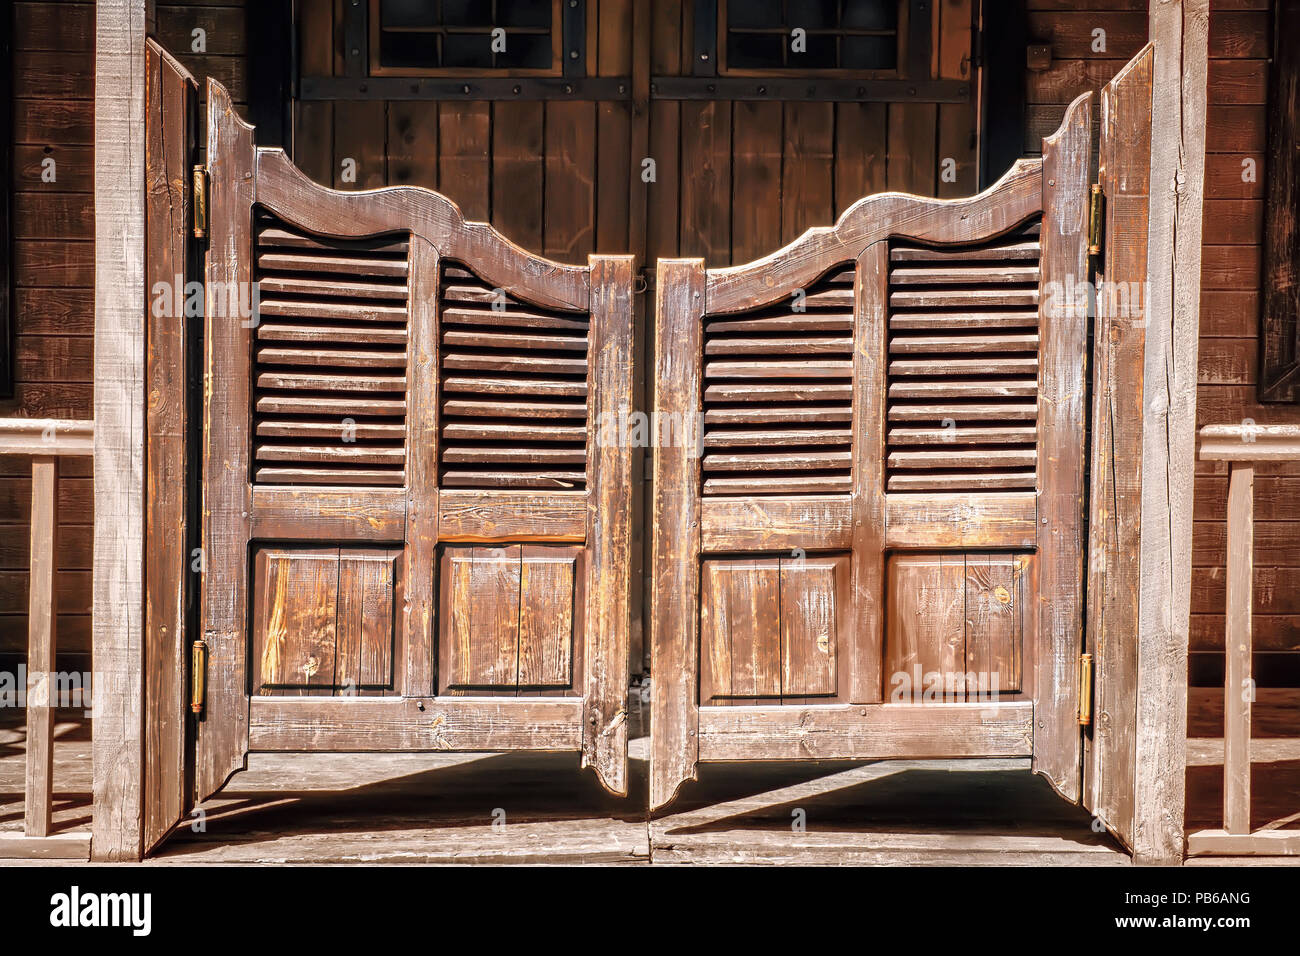 Old saloon entrance with swinging doors - Old Saloon Entrance With Swinging Doors Stock Photo: 213425788 - Alamy